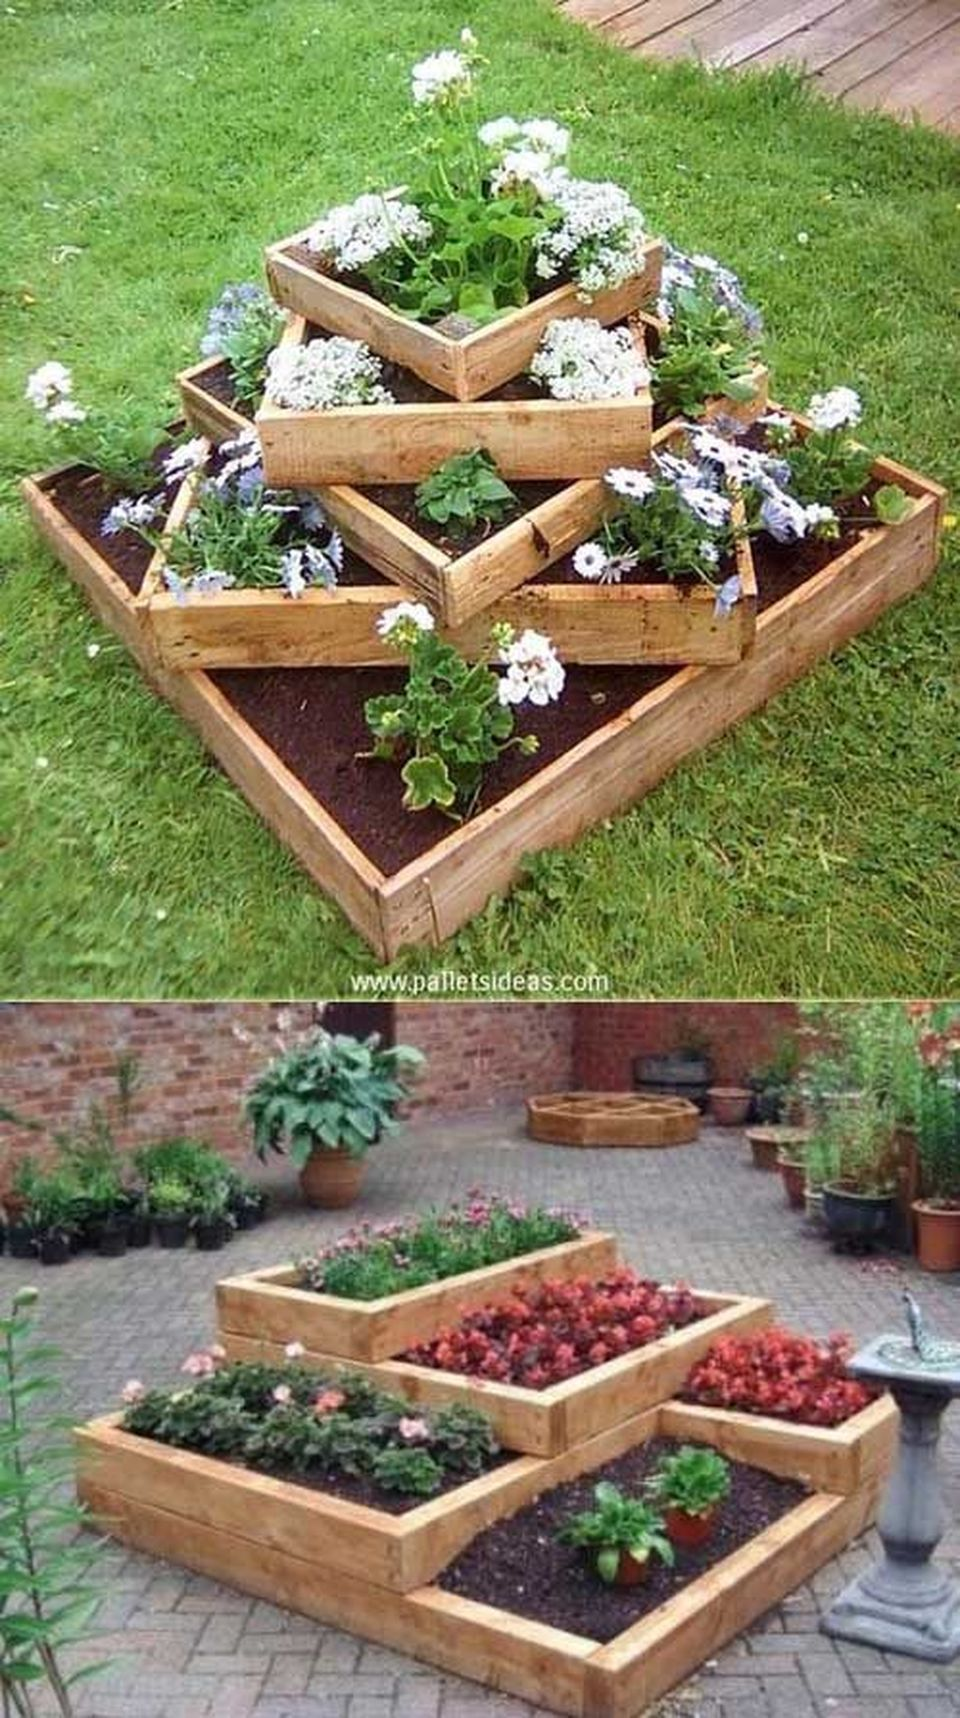 60 amazing creative wood pallet garden project ideas diy on useful diy wood project ideas id=21923